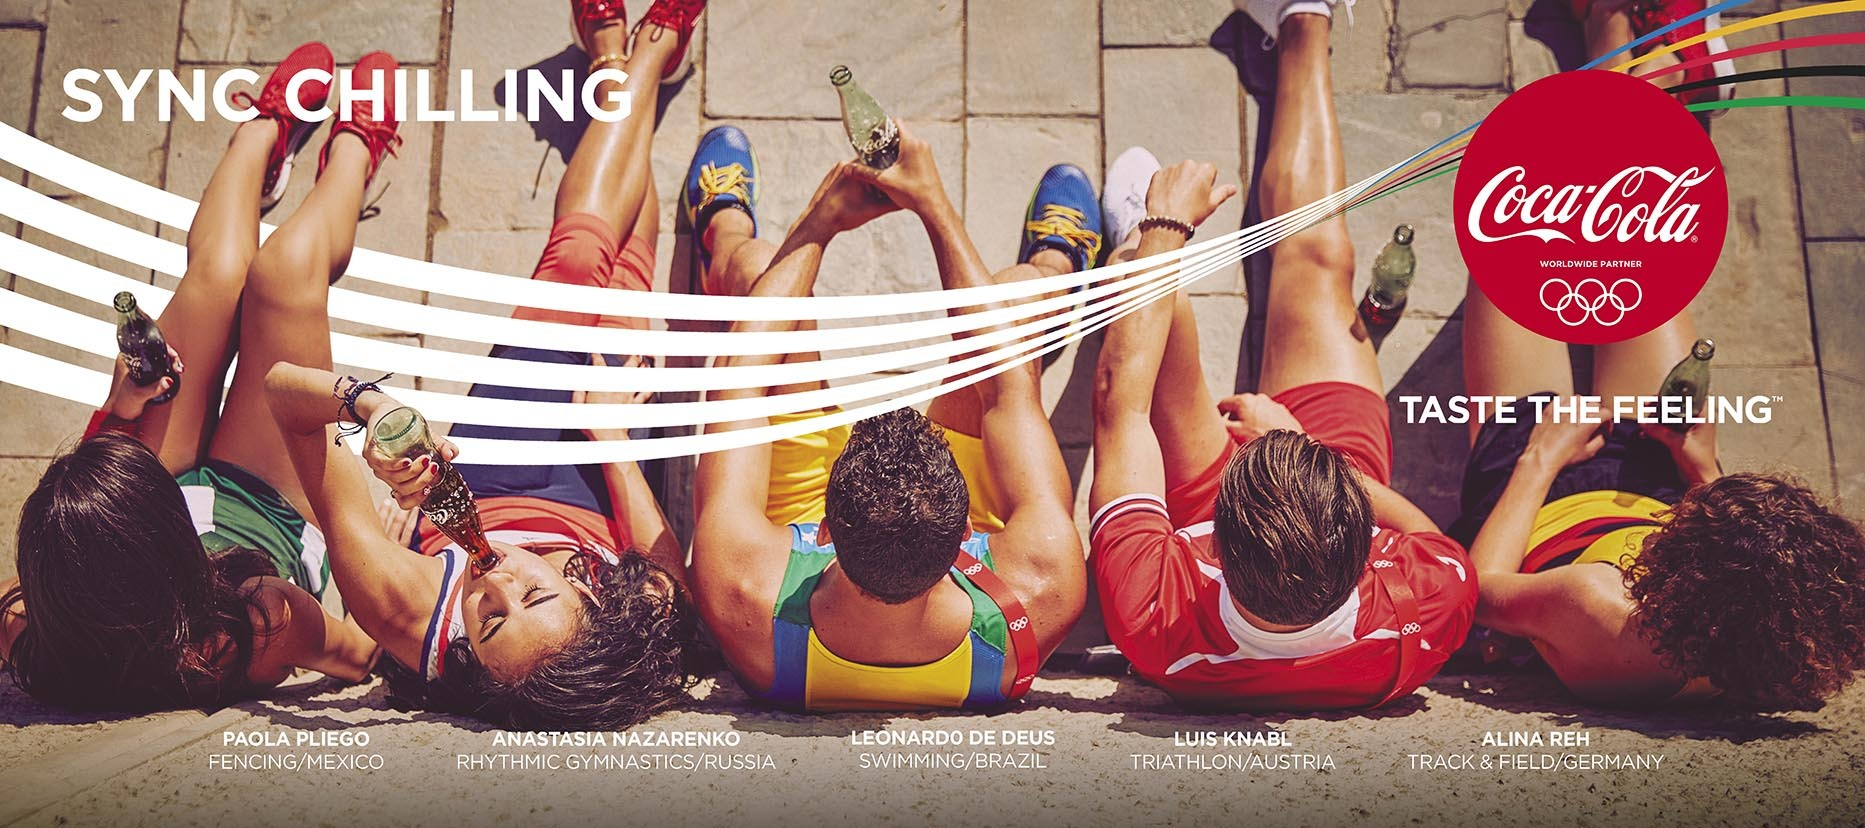 For the Rio 2016 Olympic Games, Coca-Cola is celebrating gold beyond the podium through its #ThatsGold campaign (Photo: Business Wire)